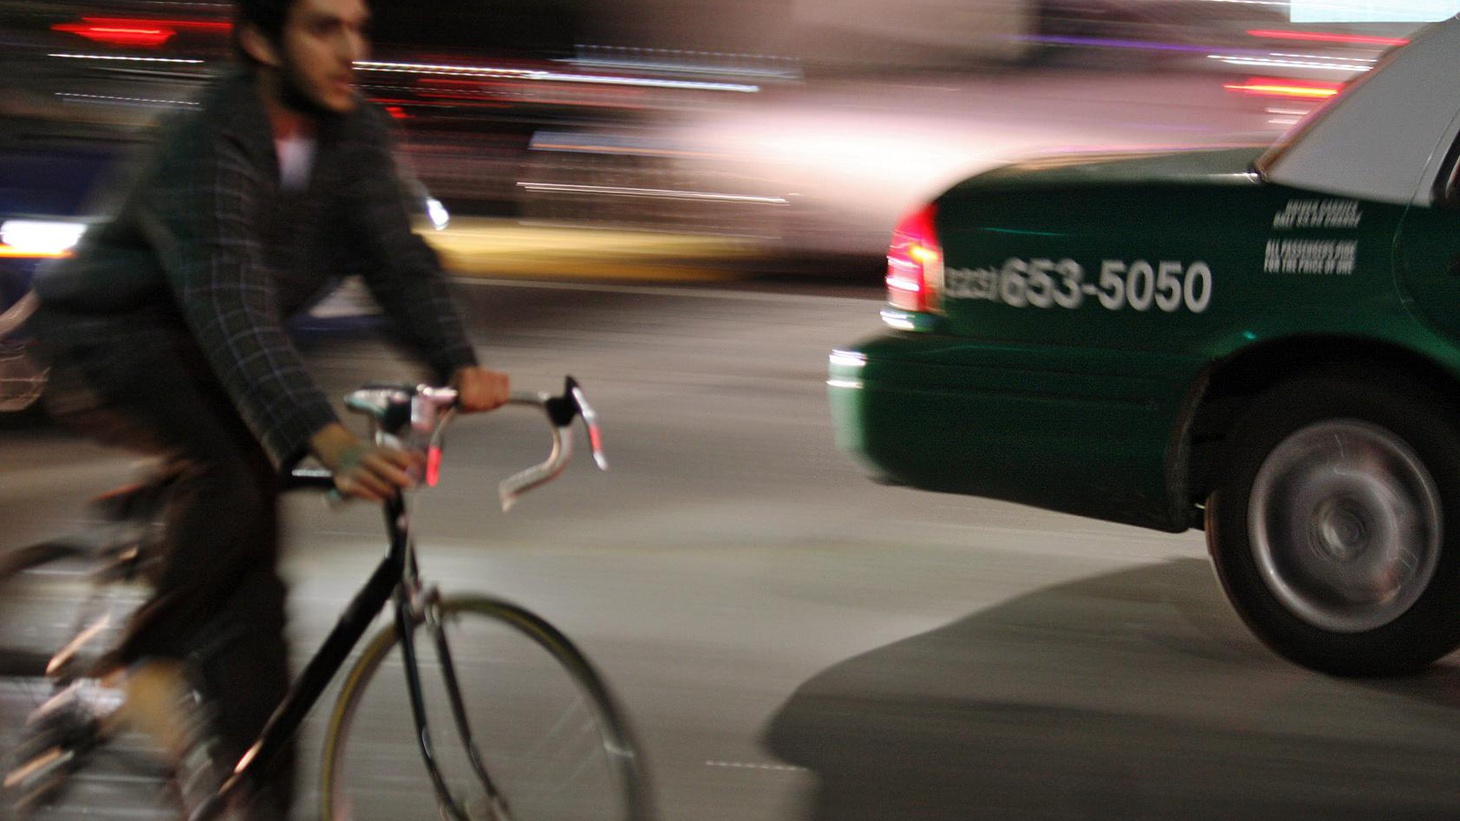 The battle over Prop 37 and the labeling of all genetically modified food. Also, even though it's illegal, is it ethical for cyclists to run red lights and stop signs?